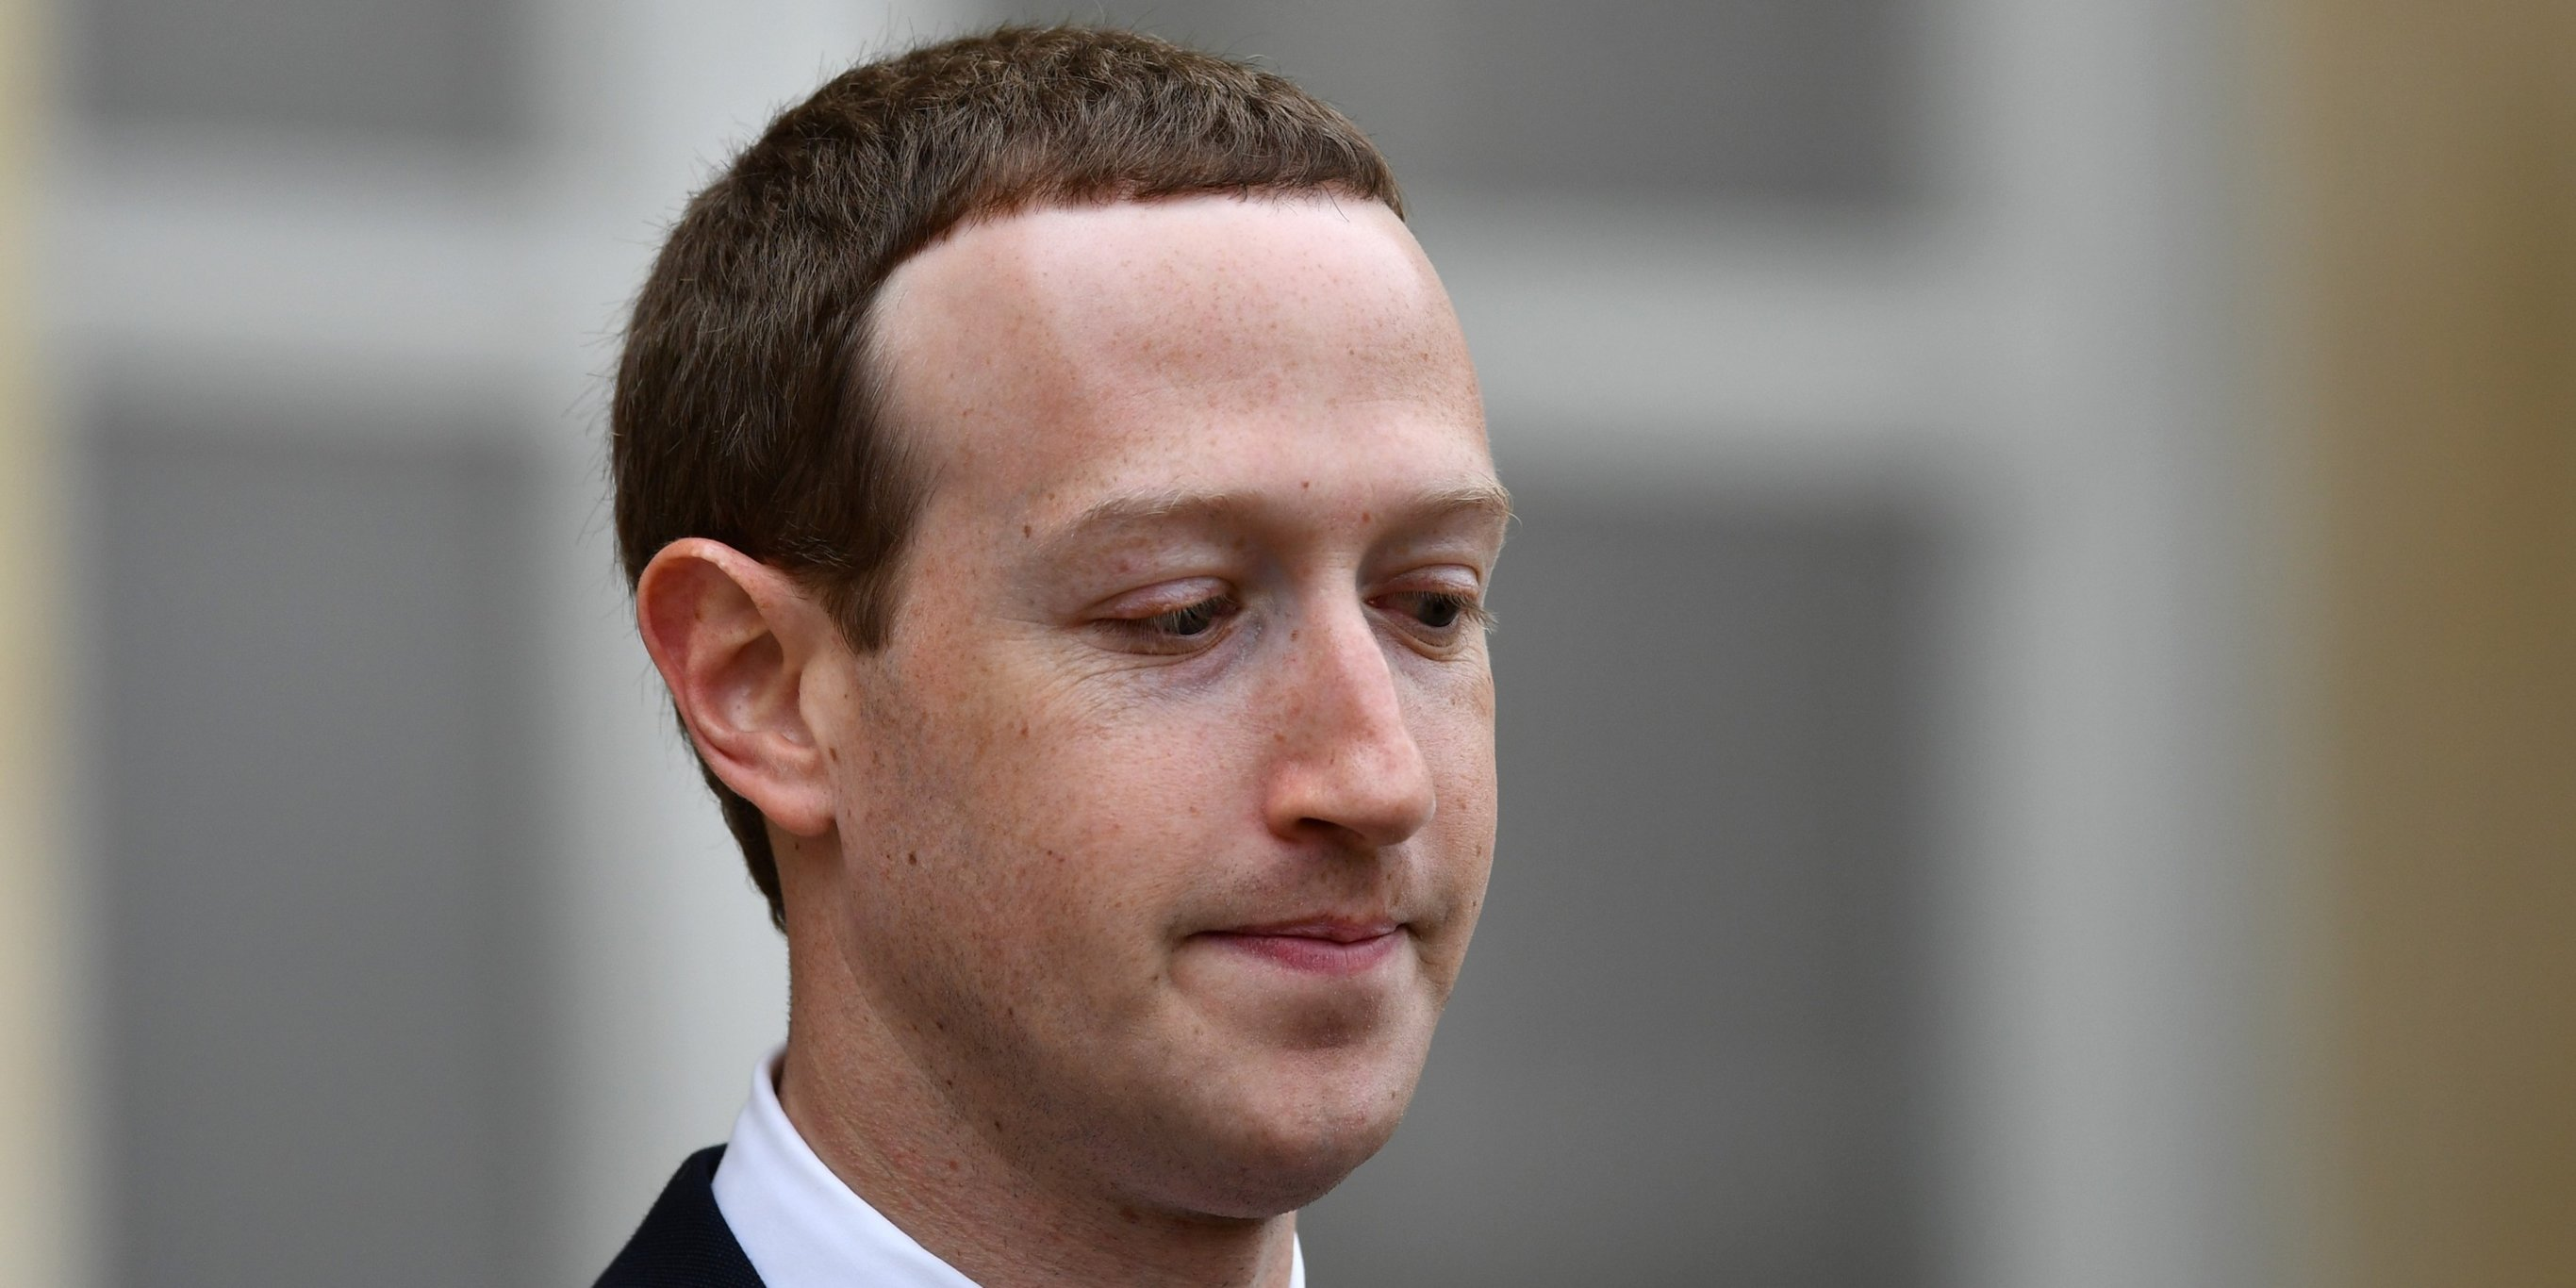 Facebook's copycat behavior was reportedly tracked by Snapchat in a dossier called 'Project Voldemort' — and Snap may have given it to the FTC to help its investigation into the social media giant